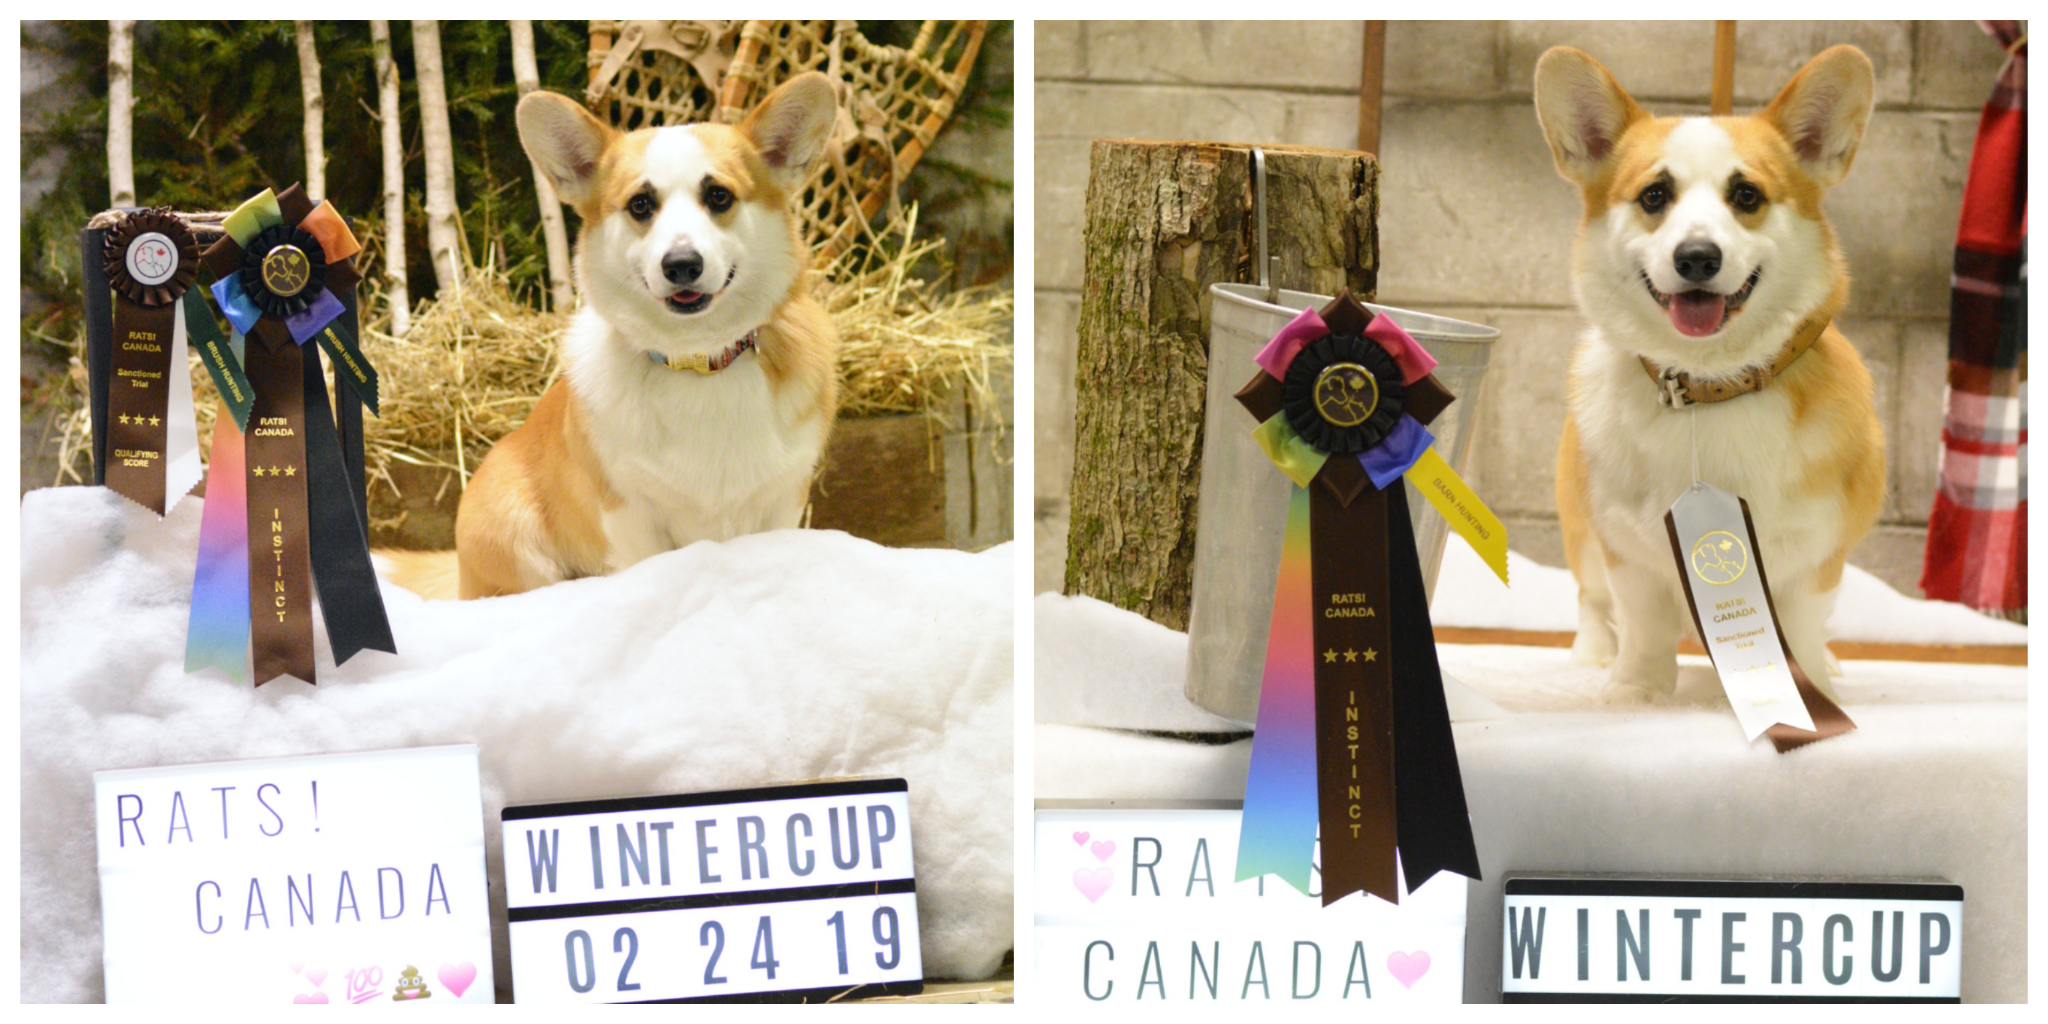 6th place Herding group Novice RATS! CANADA Winter Cup 2018-2019